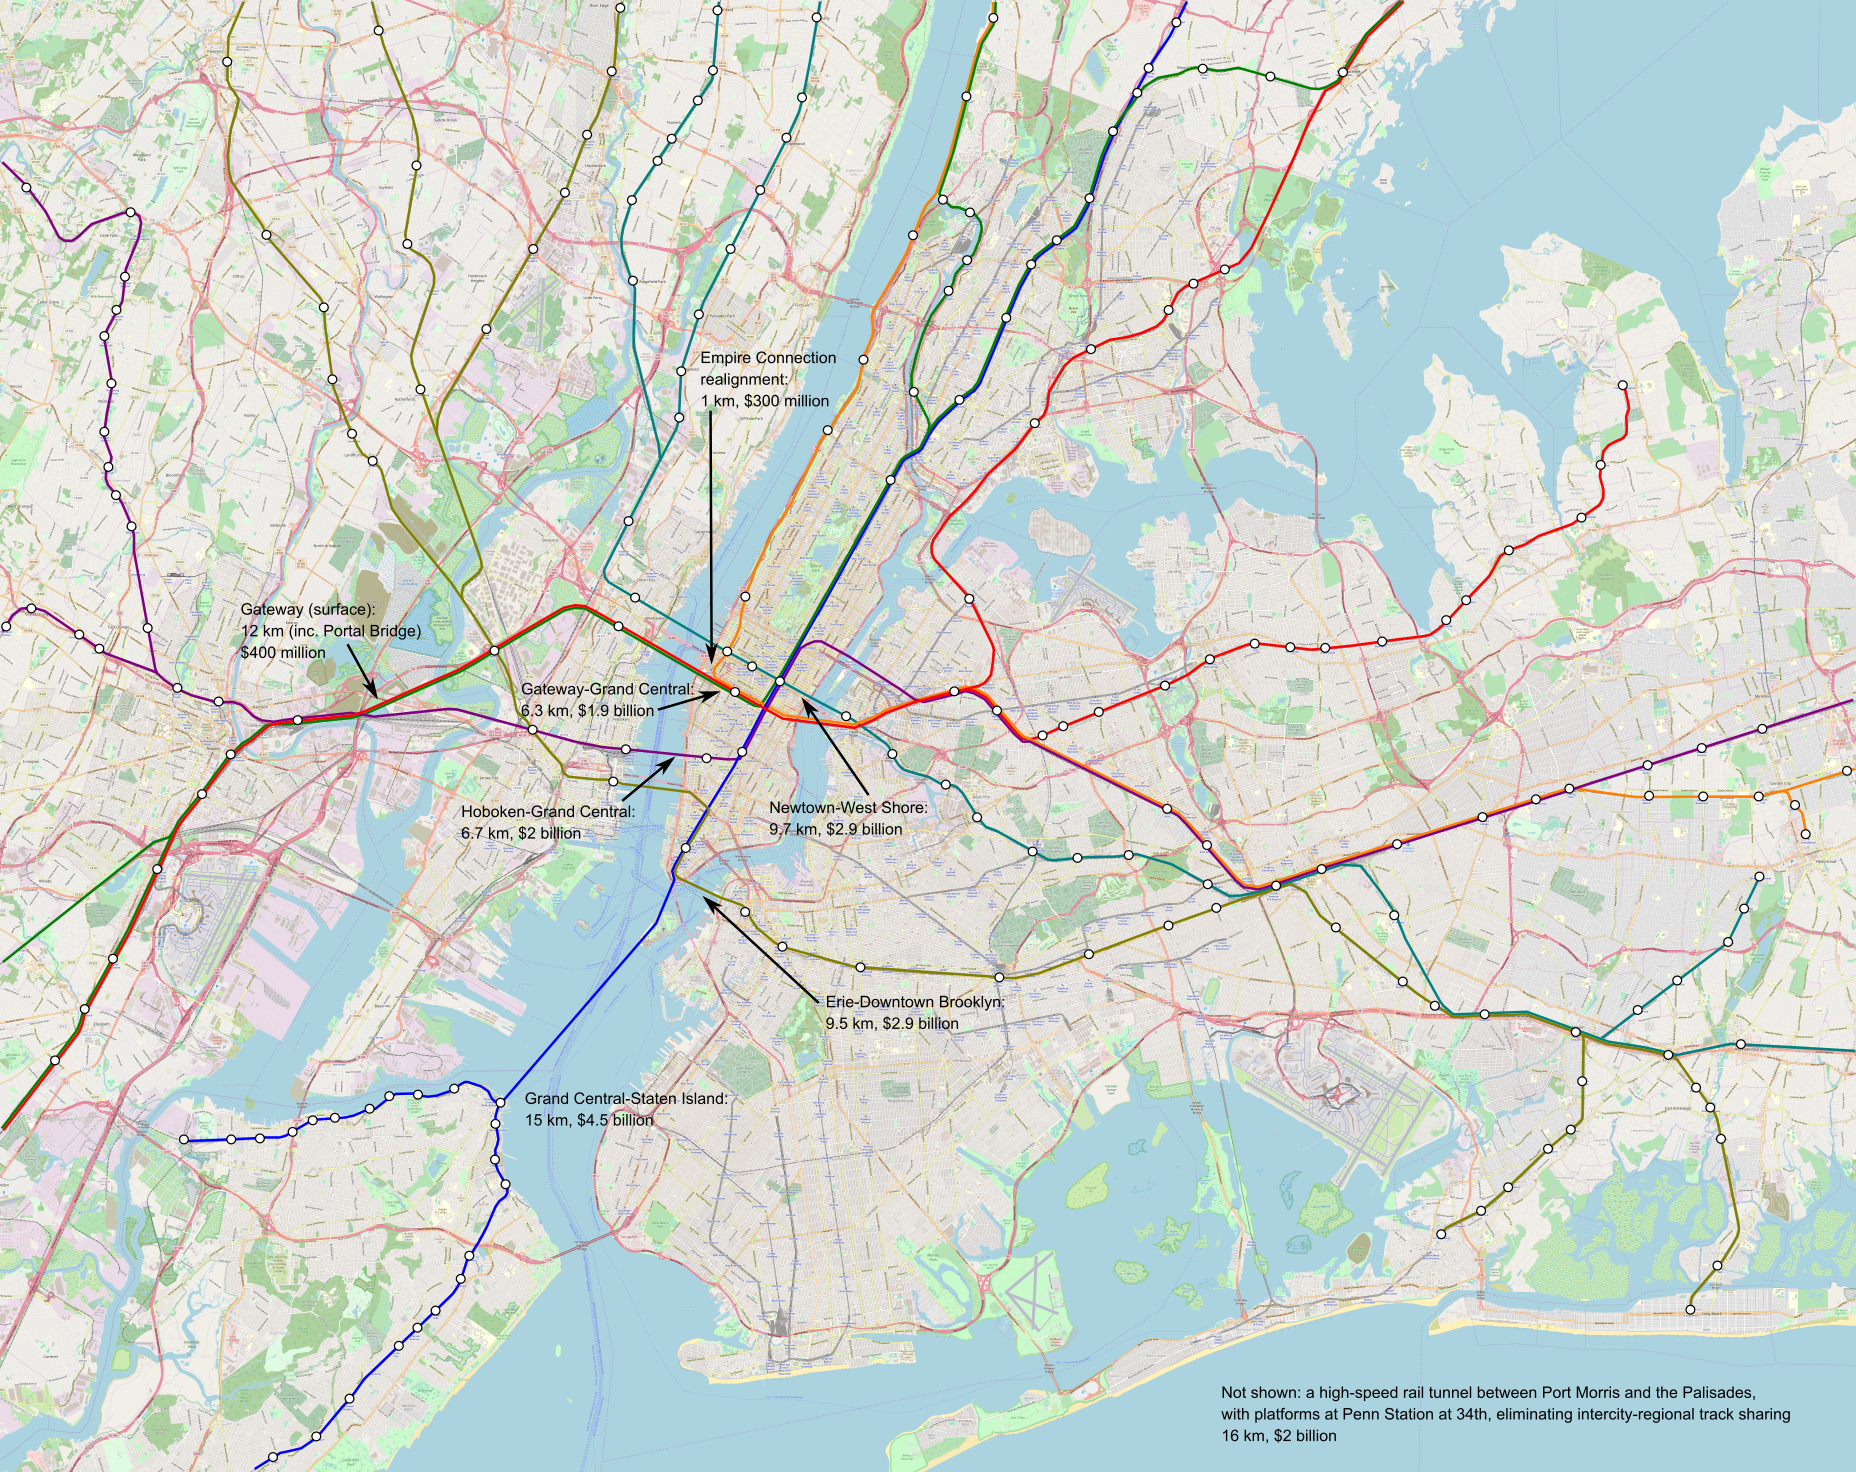 Ideal Nyc Subway Map Efficient.Assume Nordic Costs Pedestrian Observations